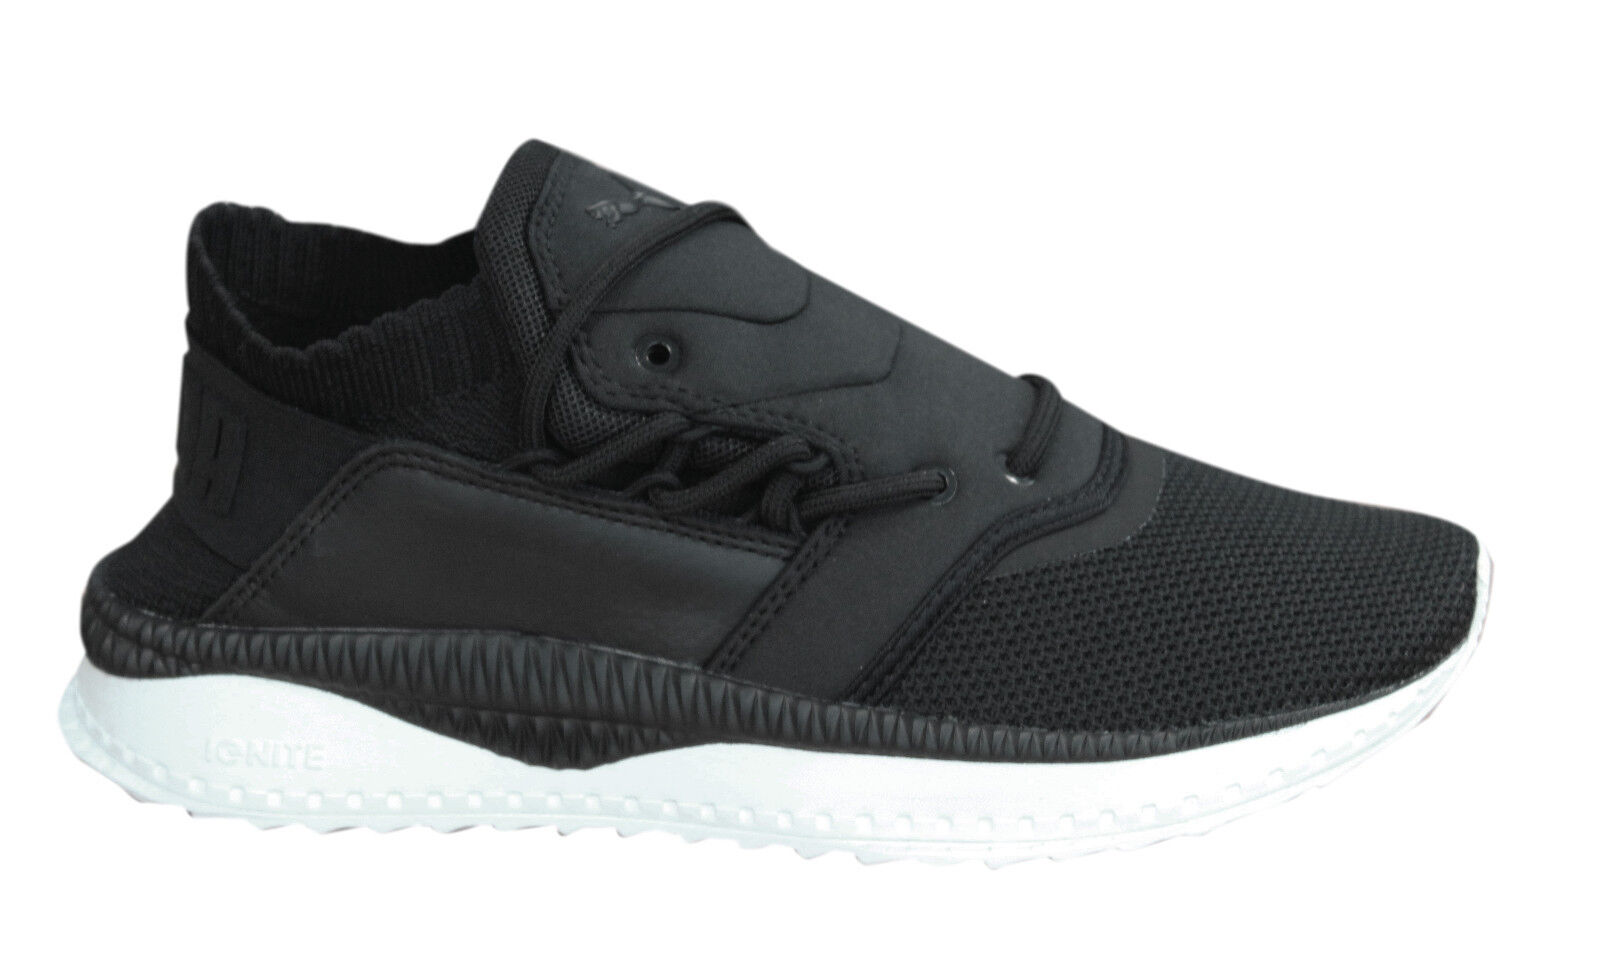 Puma TSUGI Shinsei Lace Up Black Textile Mens Trainers Shoes 363759 01 M14